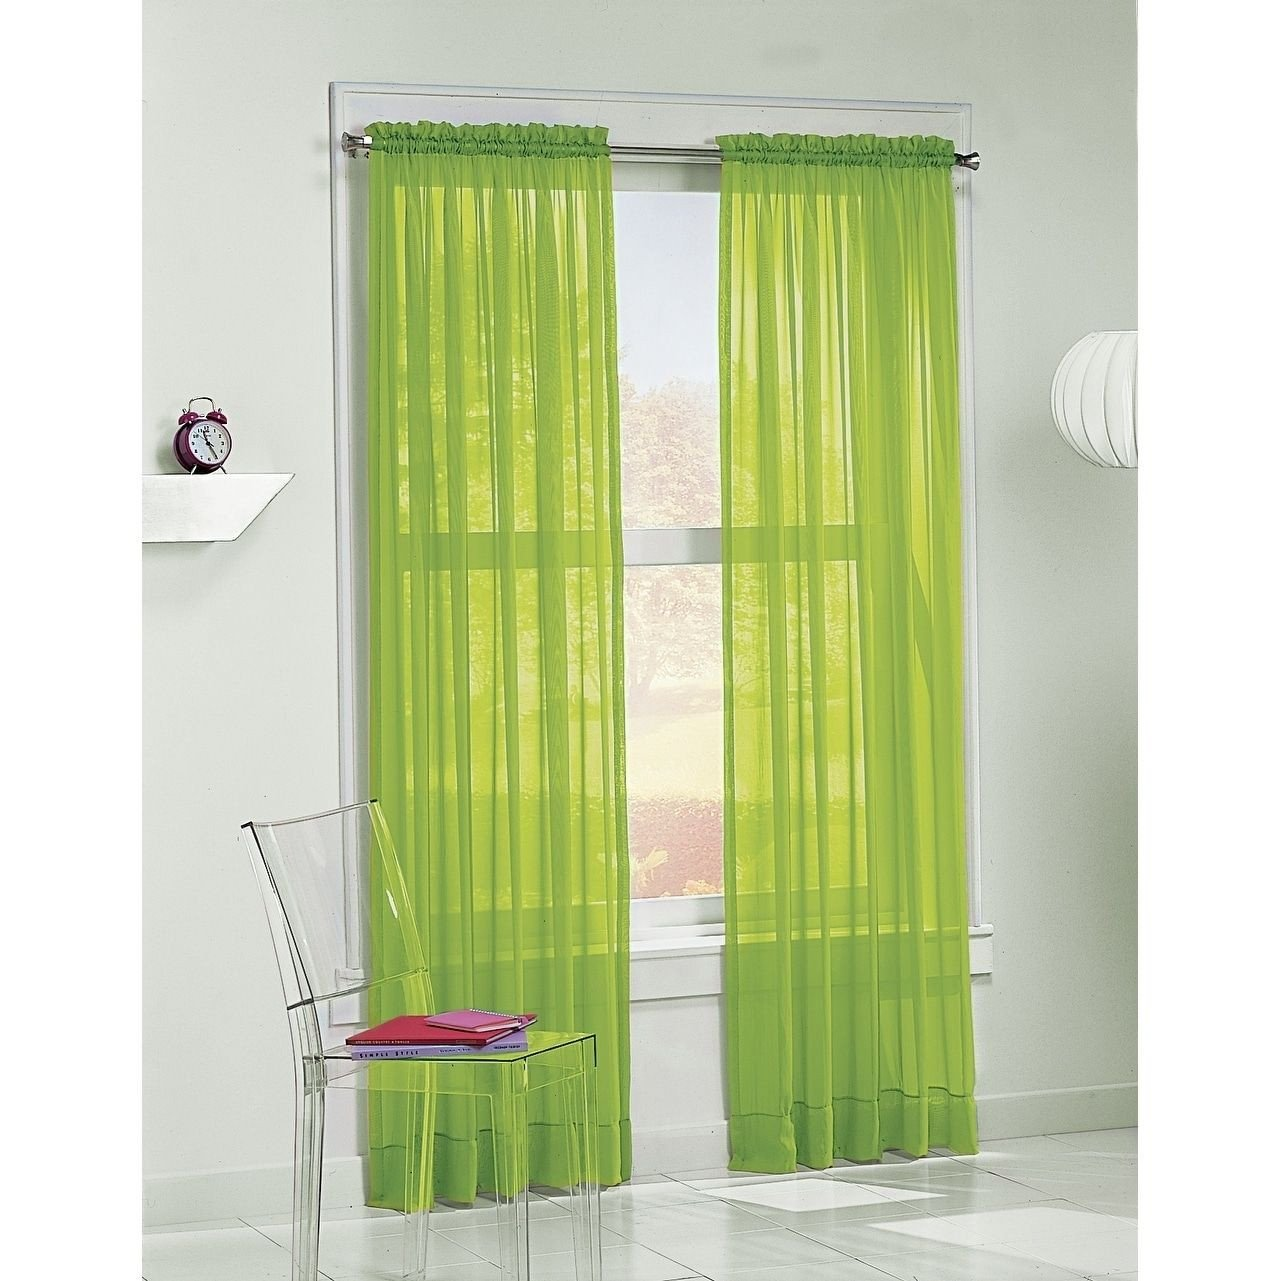 Bedroom Curtains at Walmart New No 918 Calypso 84 Inch Curtain Panel Lime Green Size